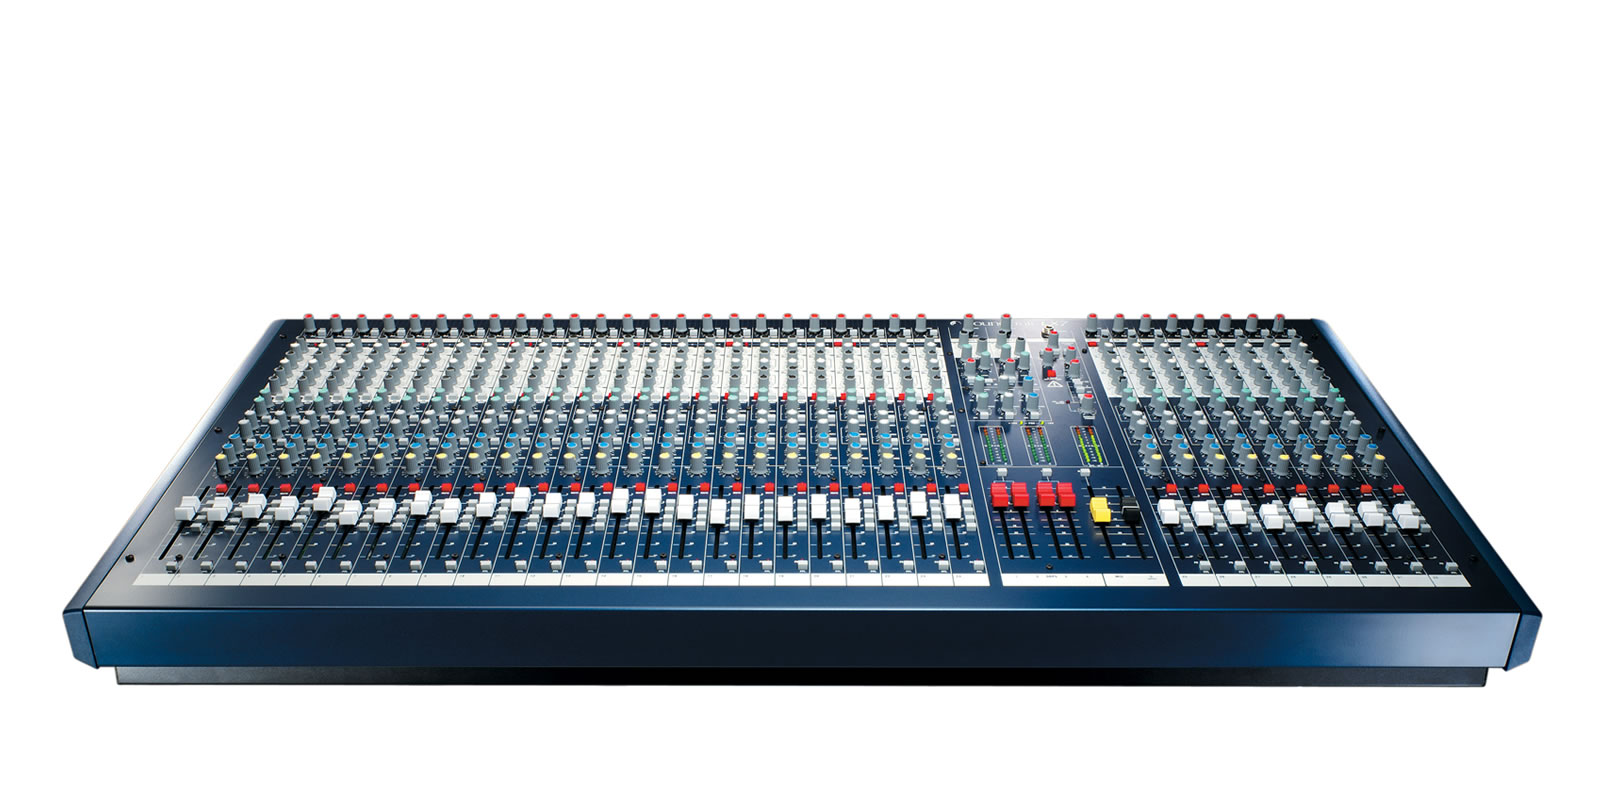 Soundcraft lx7 24 channel mixer manual